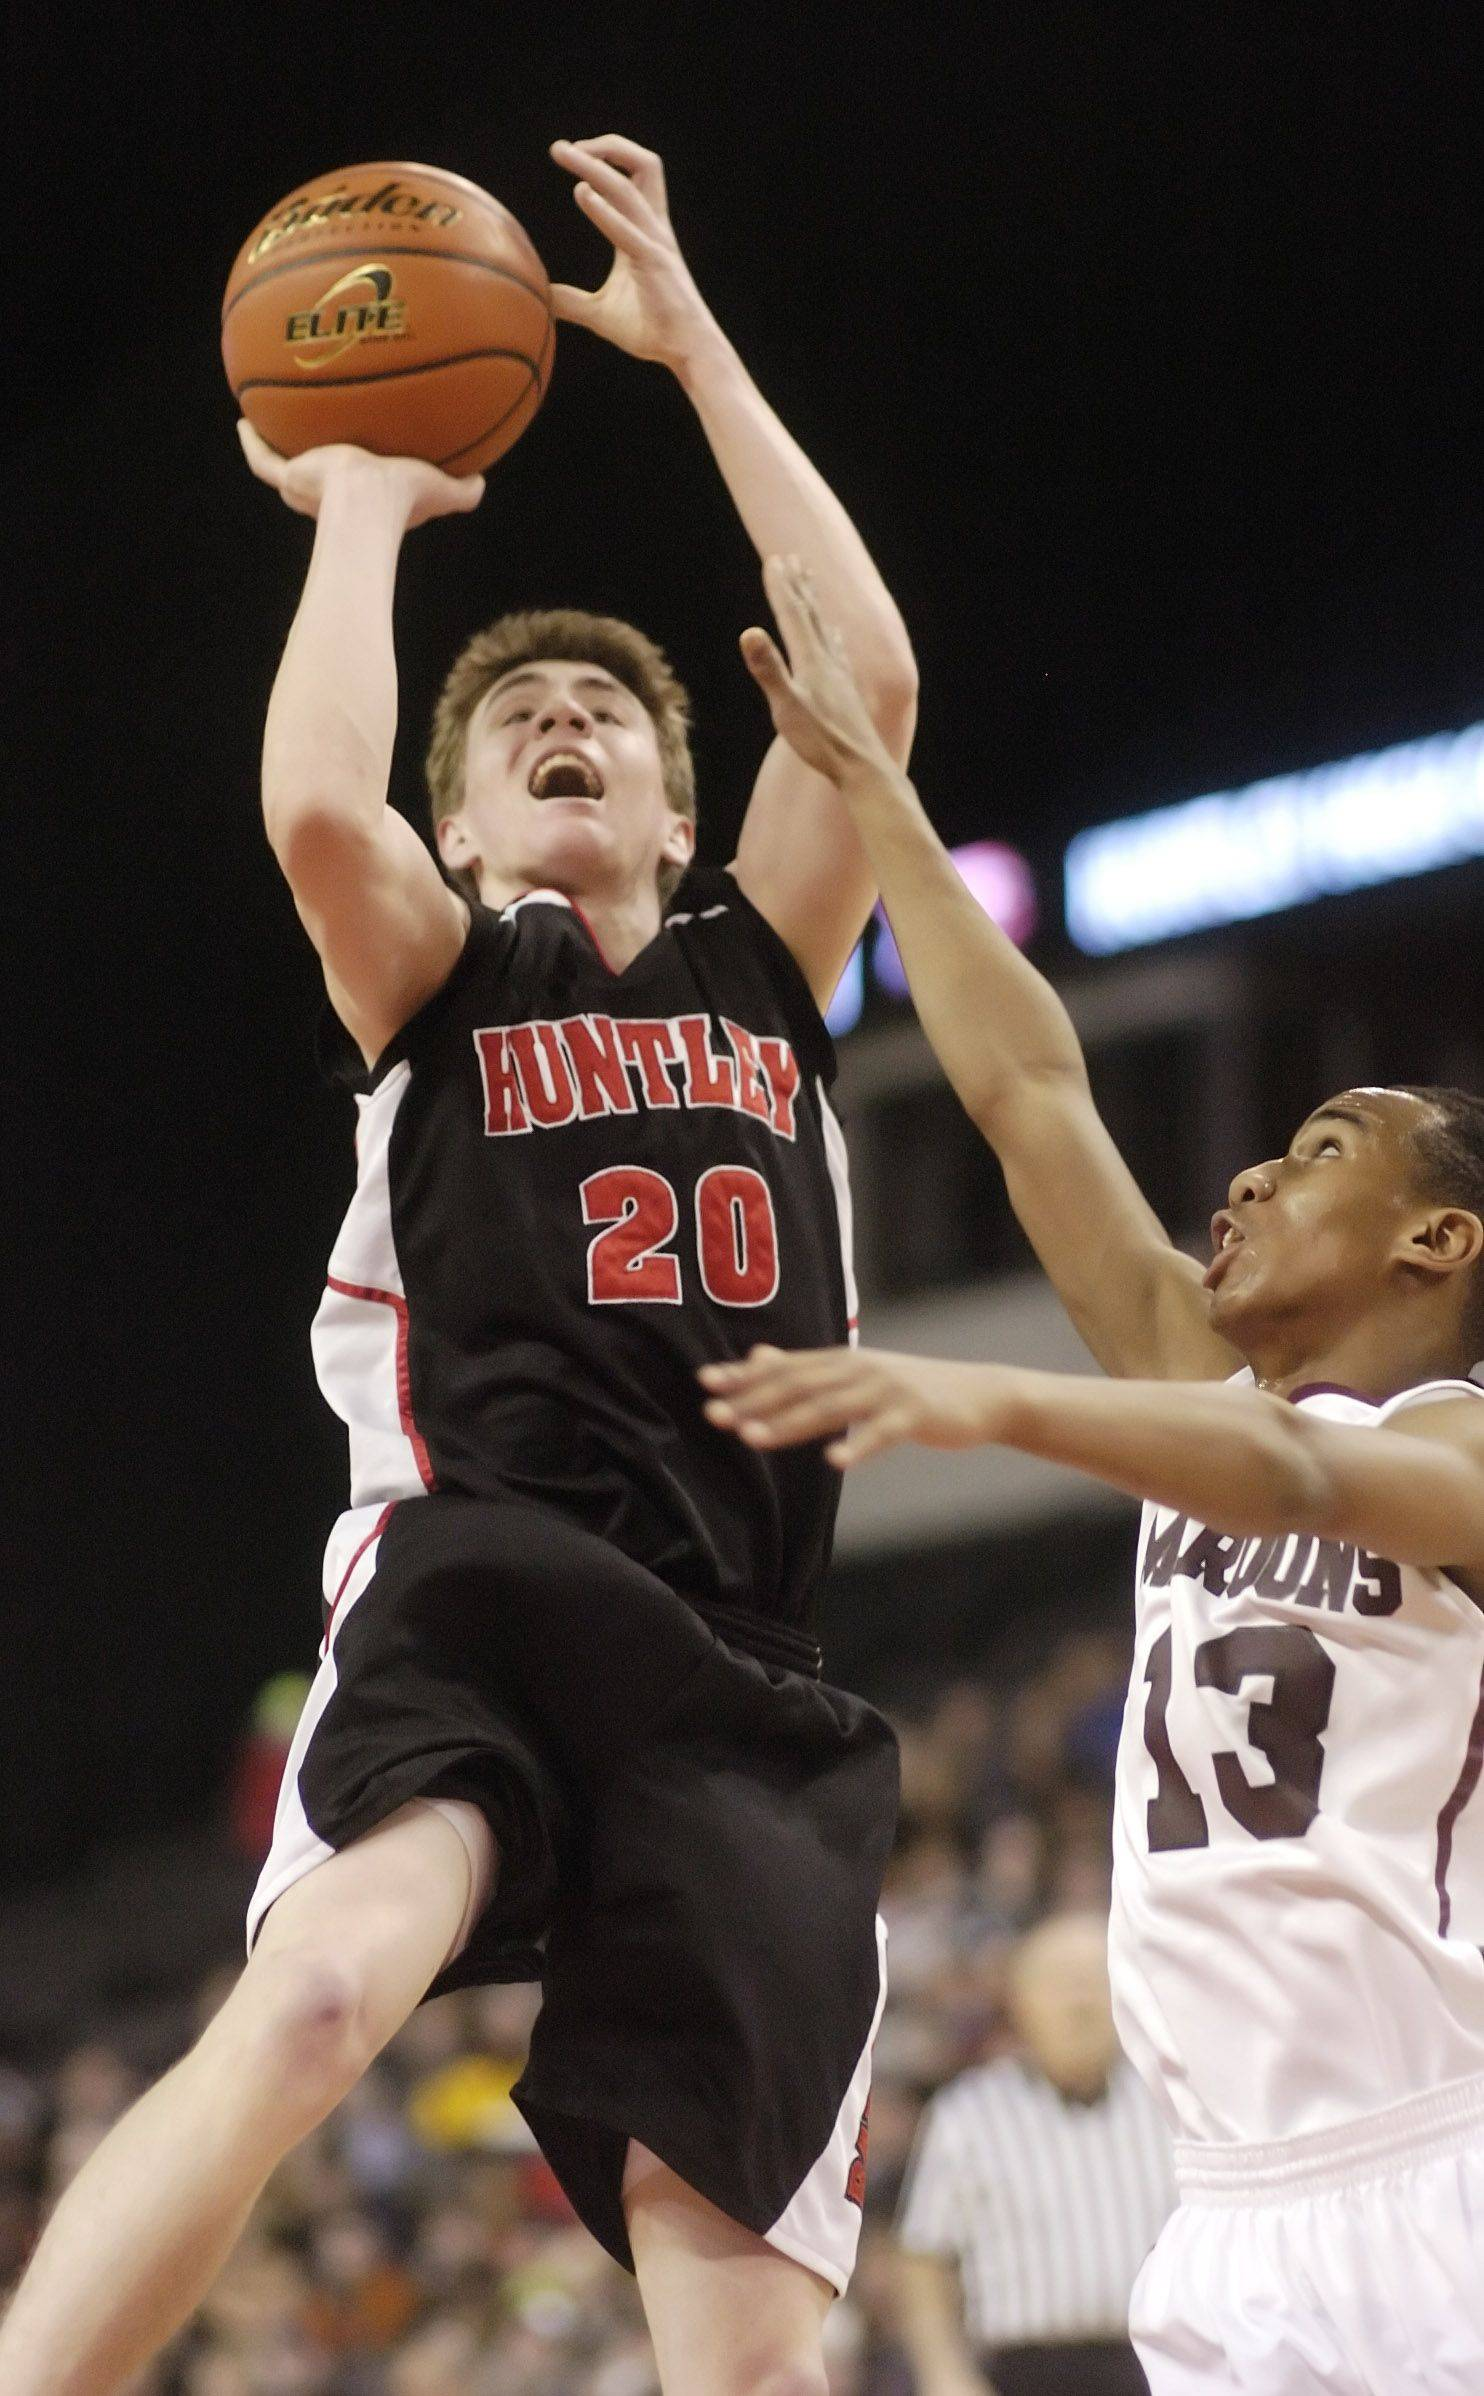 Huntley's Troy Miller, left, takes a shot against the defense of Elgin's Cortez Scott during Saturday's High School Hoops Showdown game at the Sears Centre in Hoffman Estates.